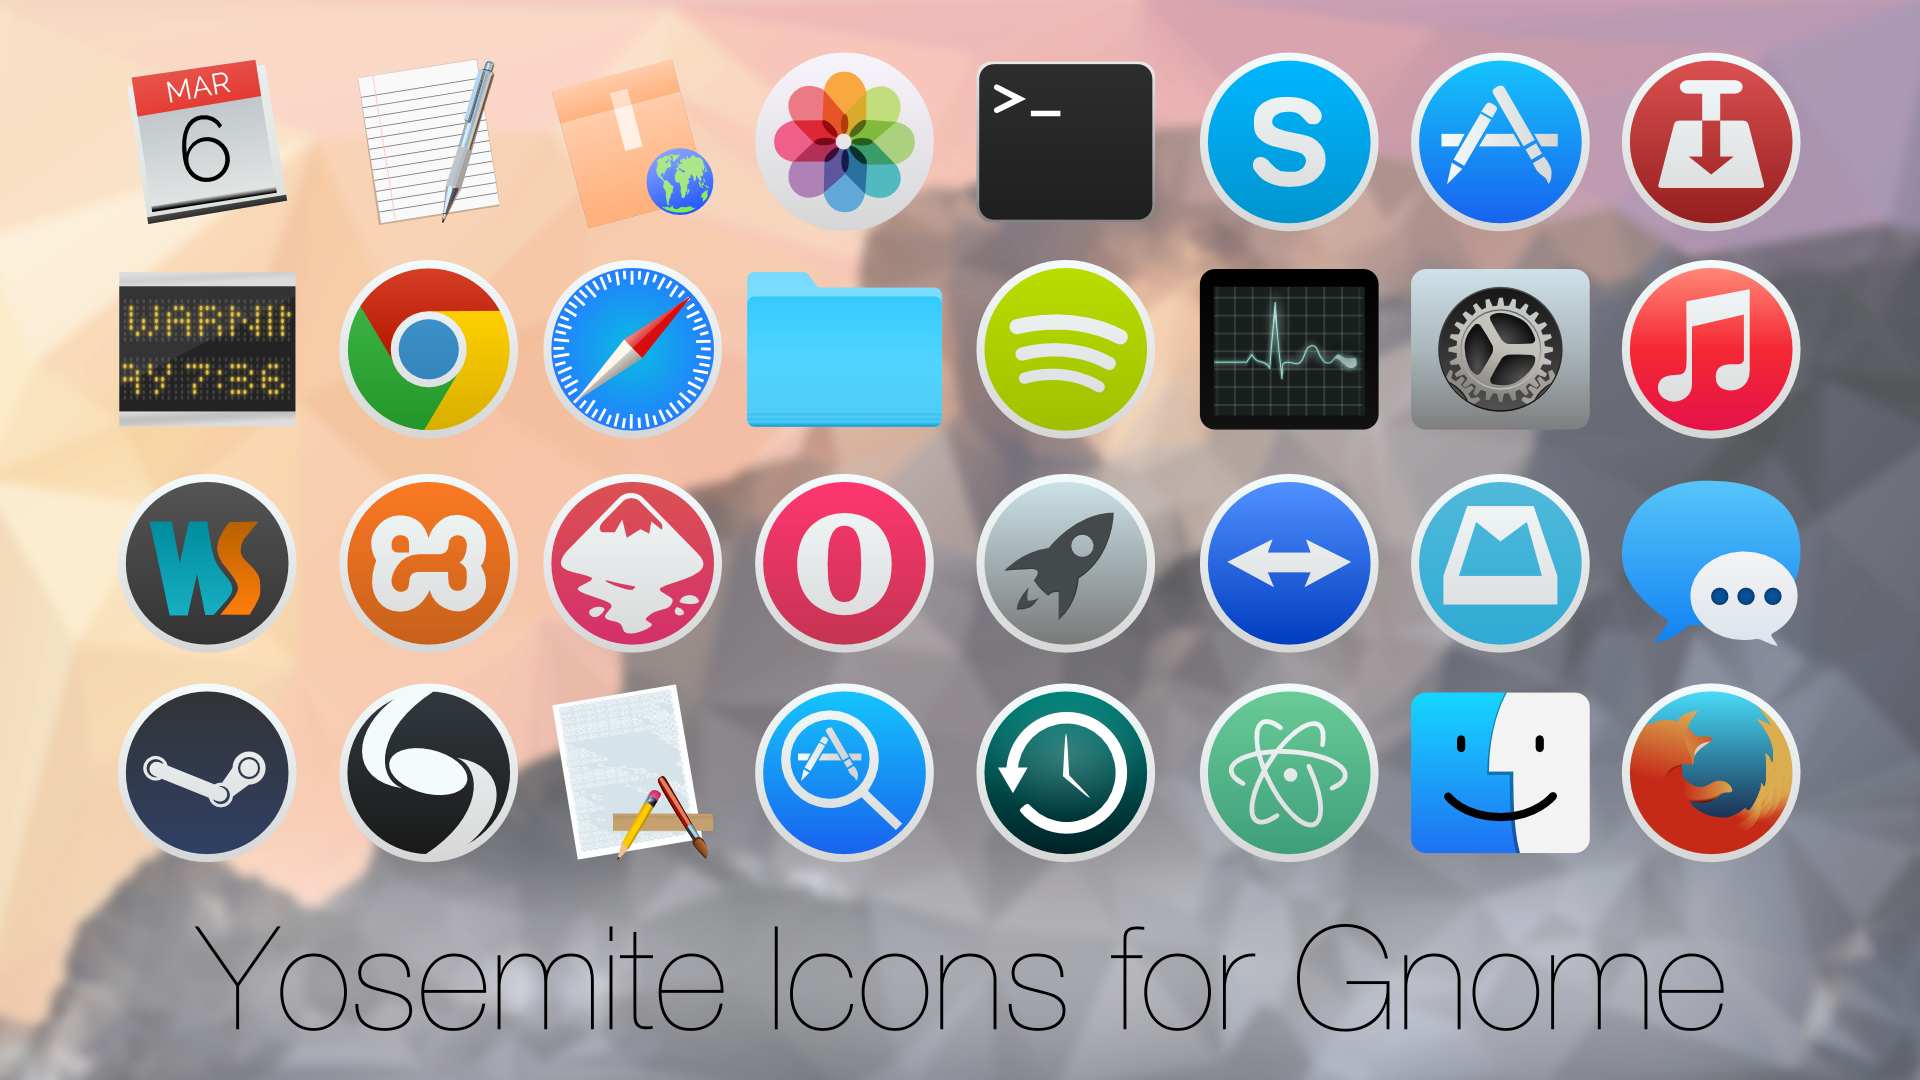 Icons favourites by hostister on DeviantArt